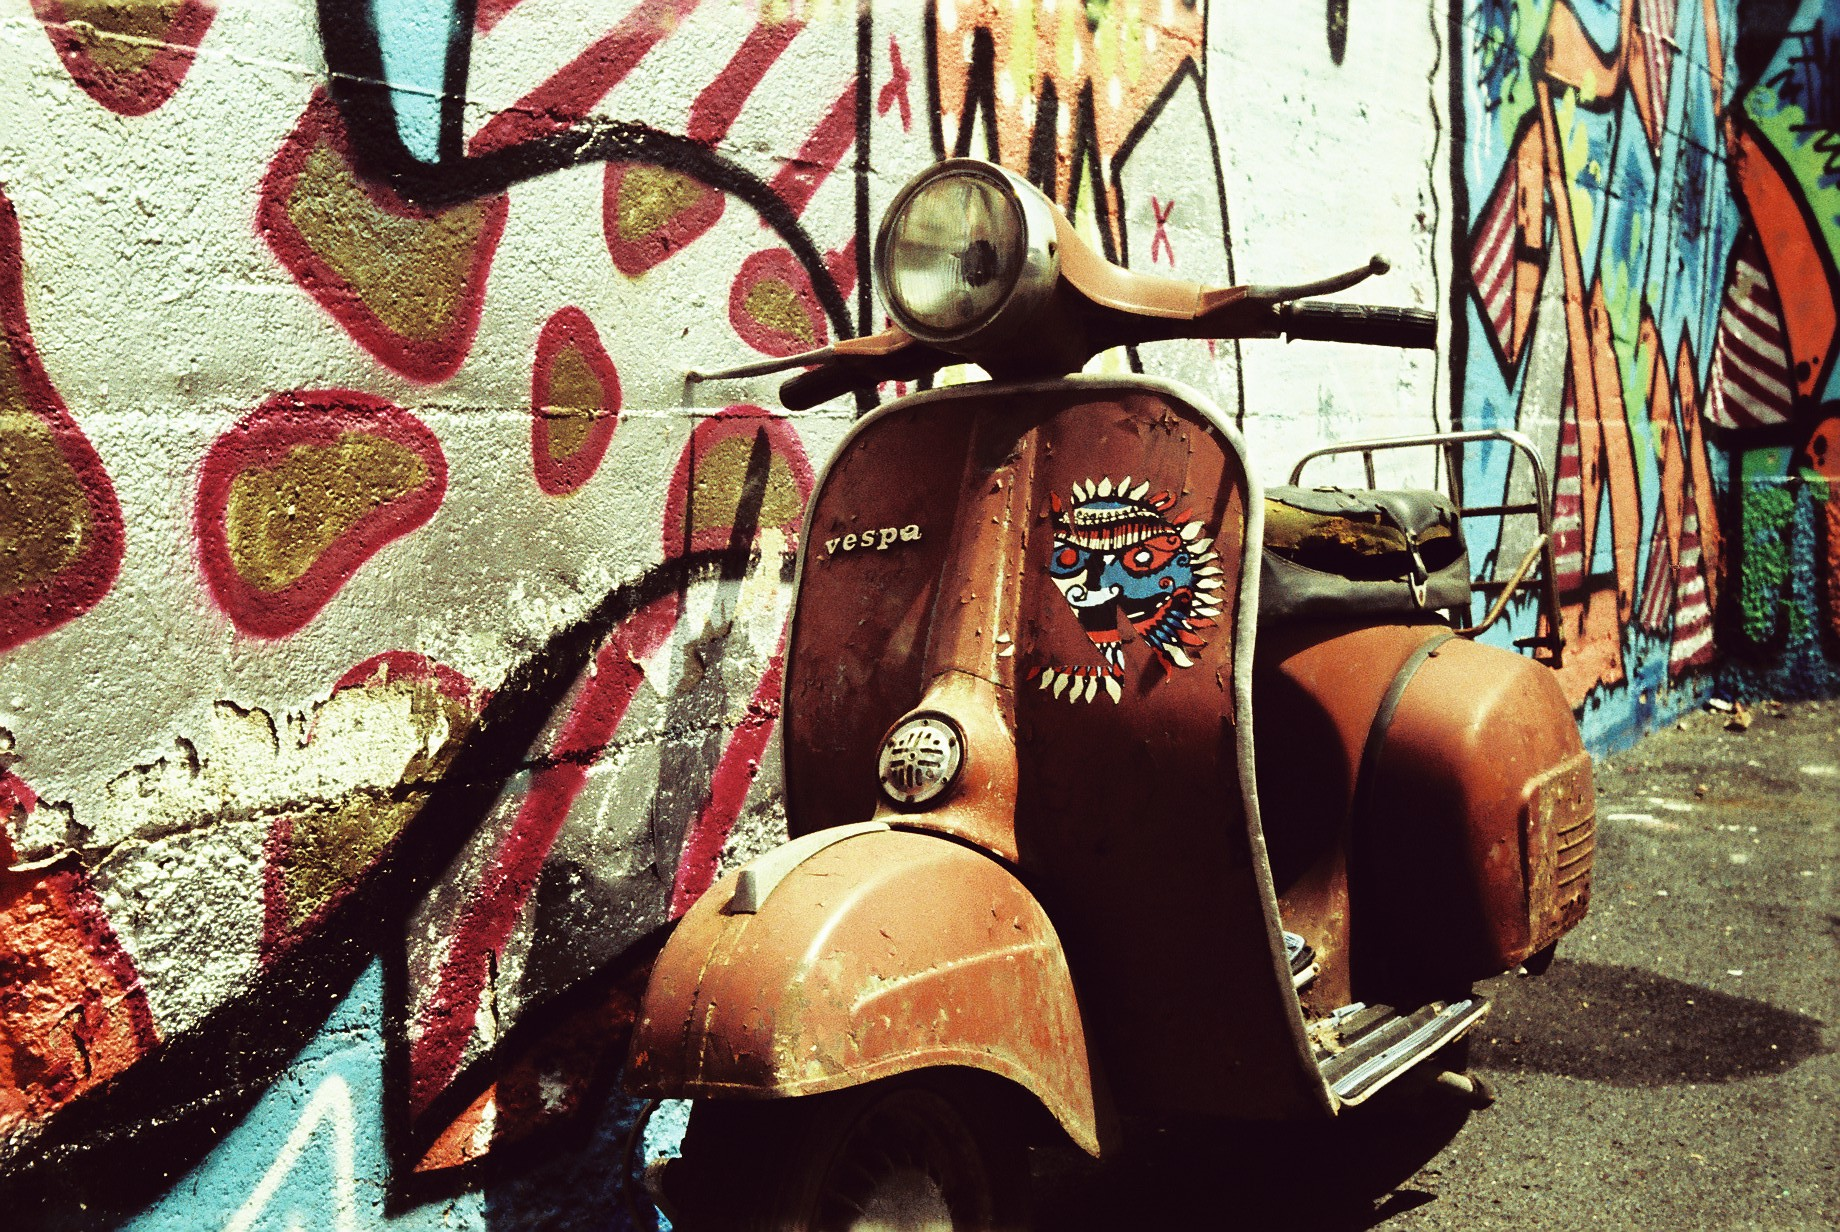 Scooter and graffiti (Pic: Mathias Is Still Around/Flickr)